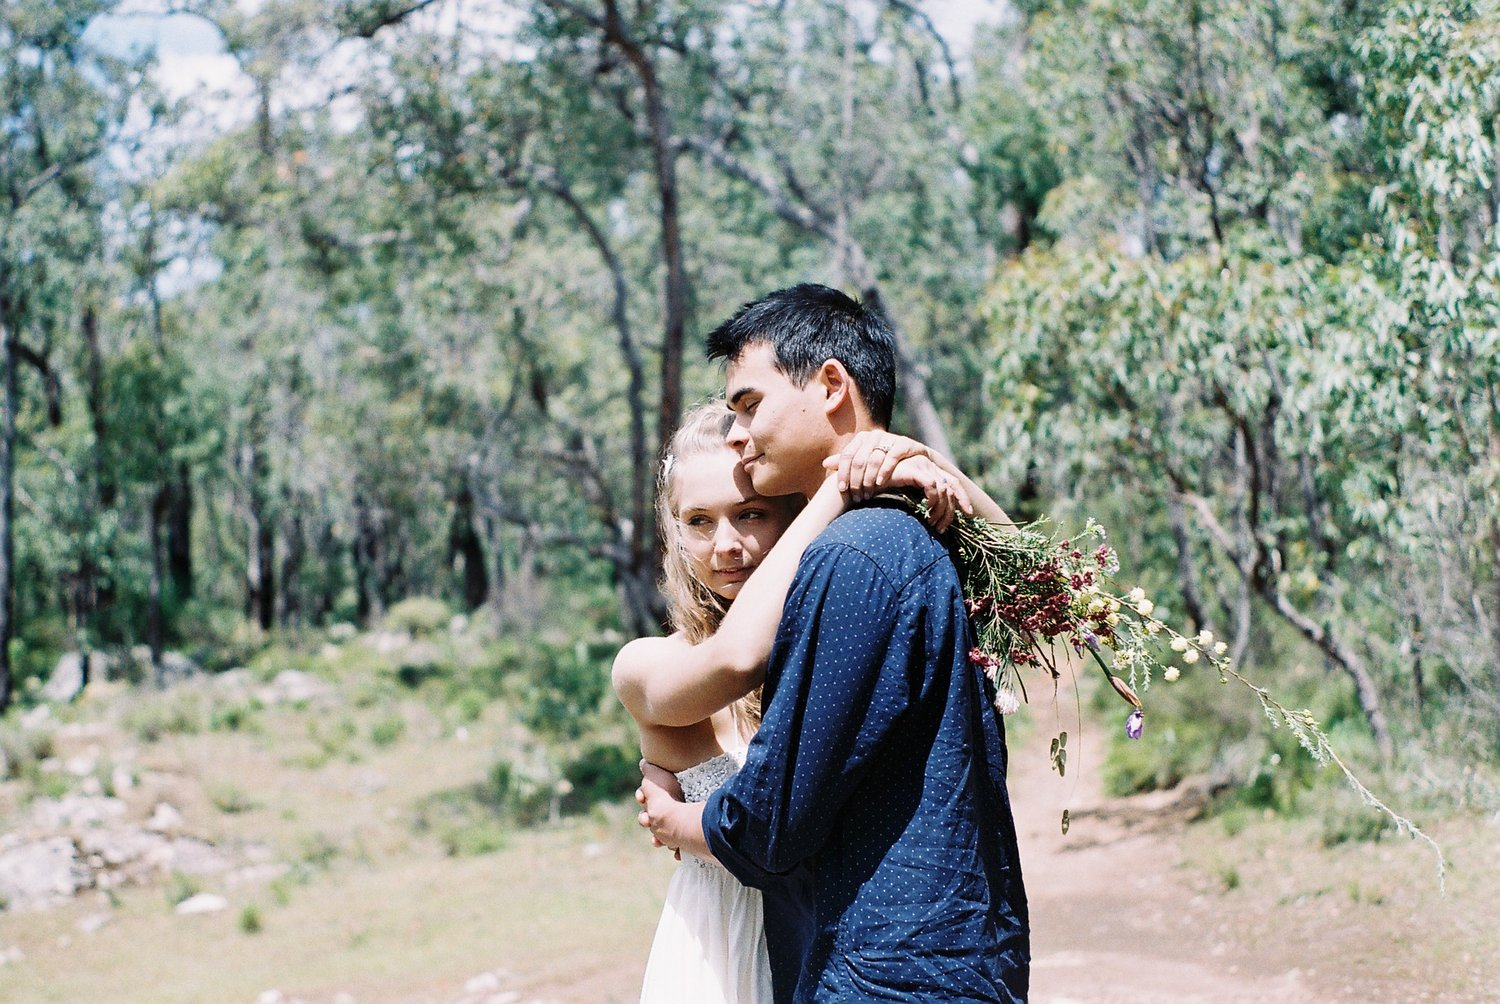 Jarrahdale Adventure Engagement Film Photographer